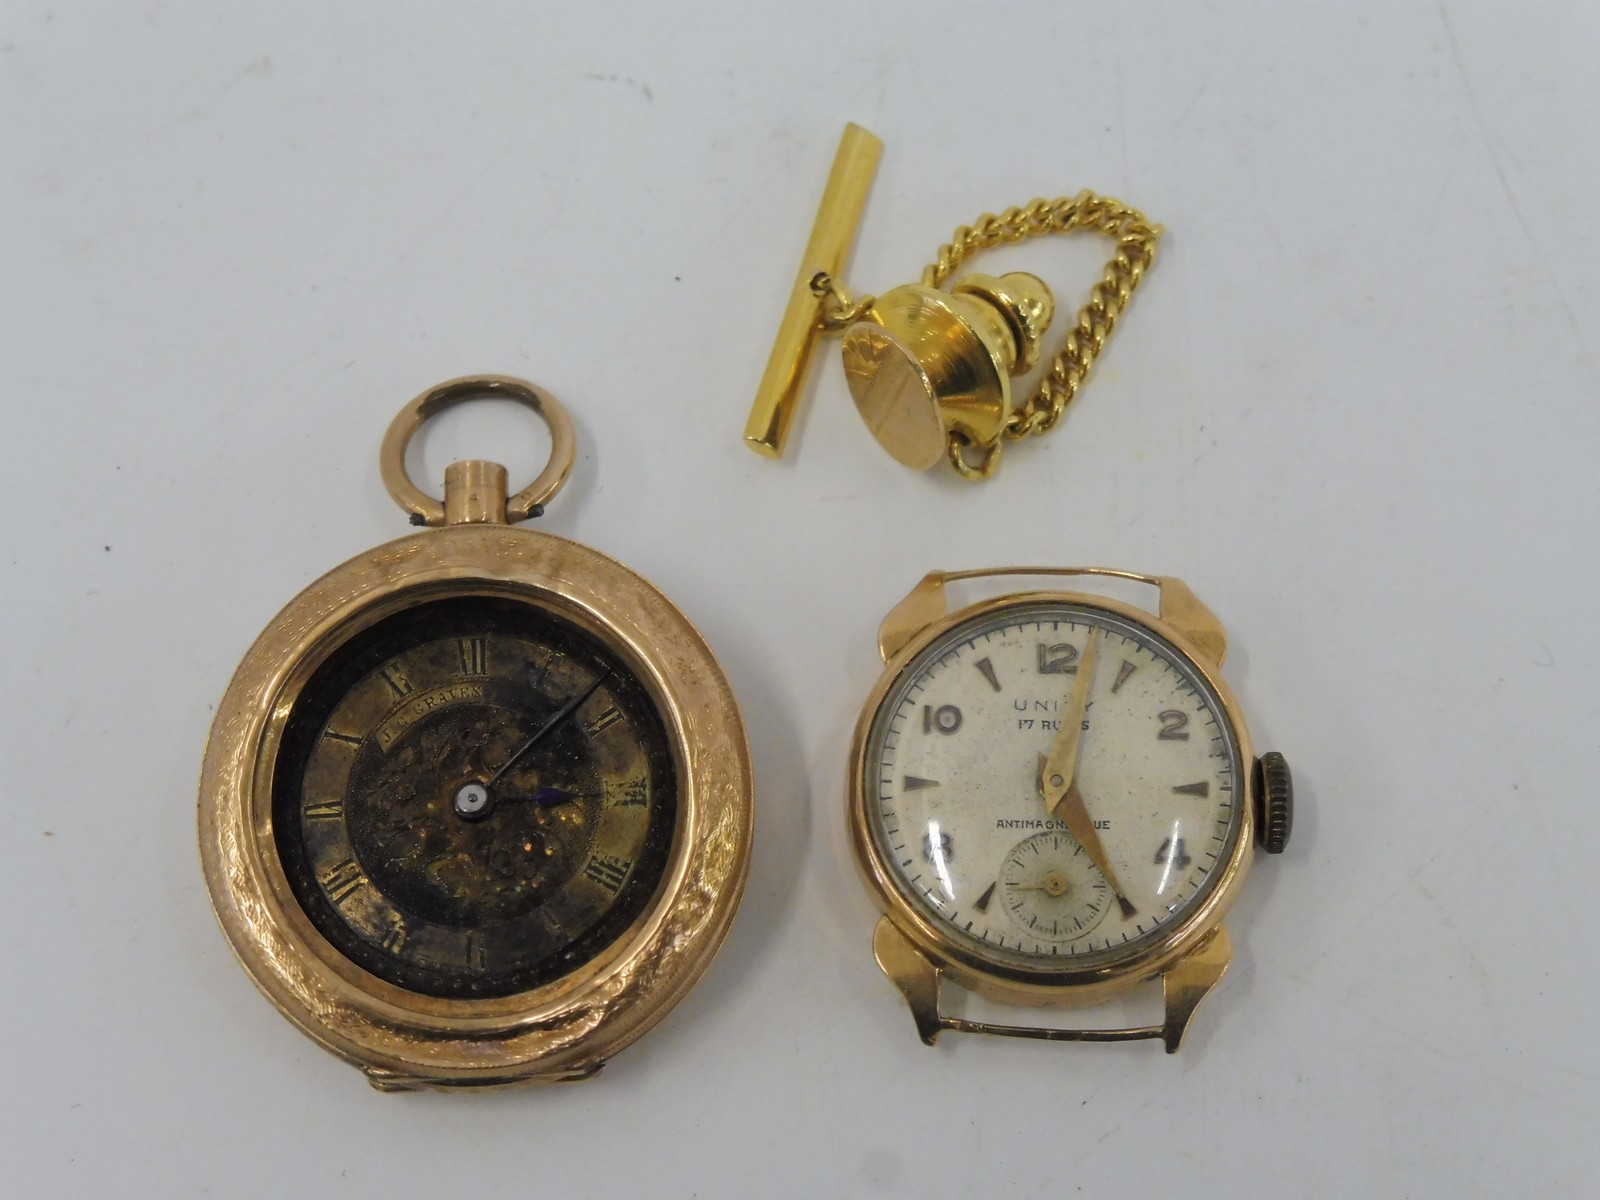 Lot 54 - A small 18ct gold lady's wristwatch, lacking strap and a 14k gold pocket watch for restoration.